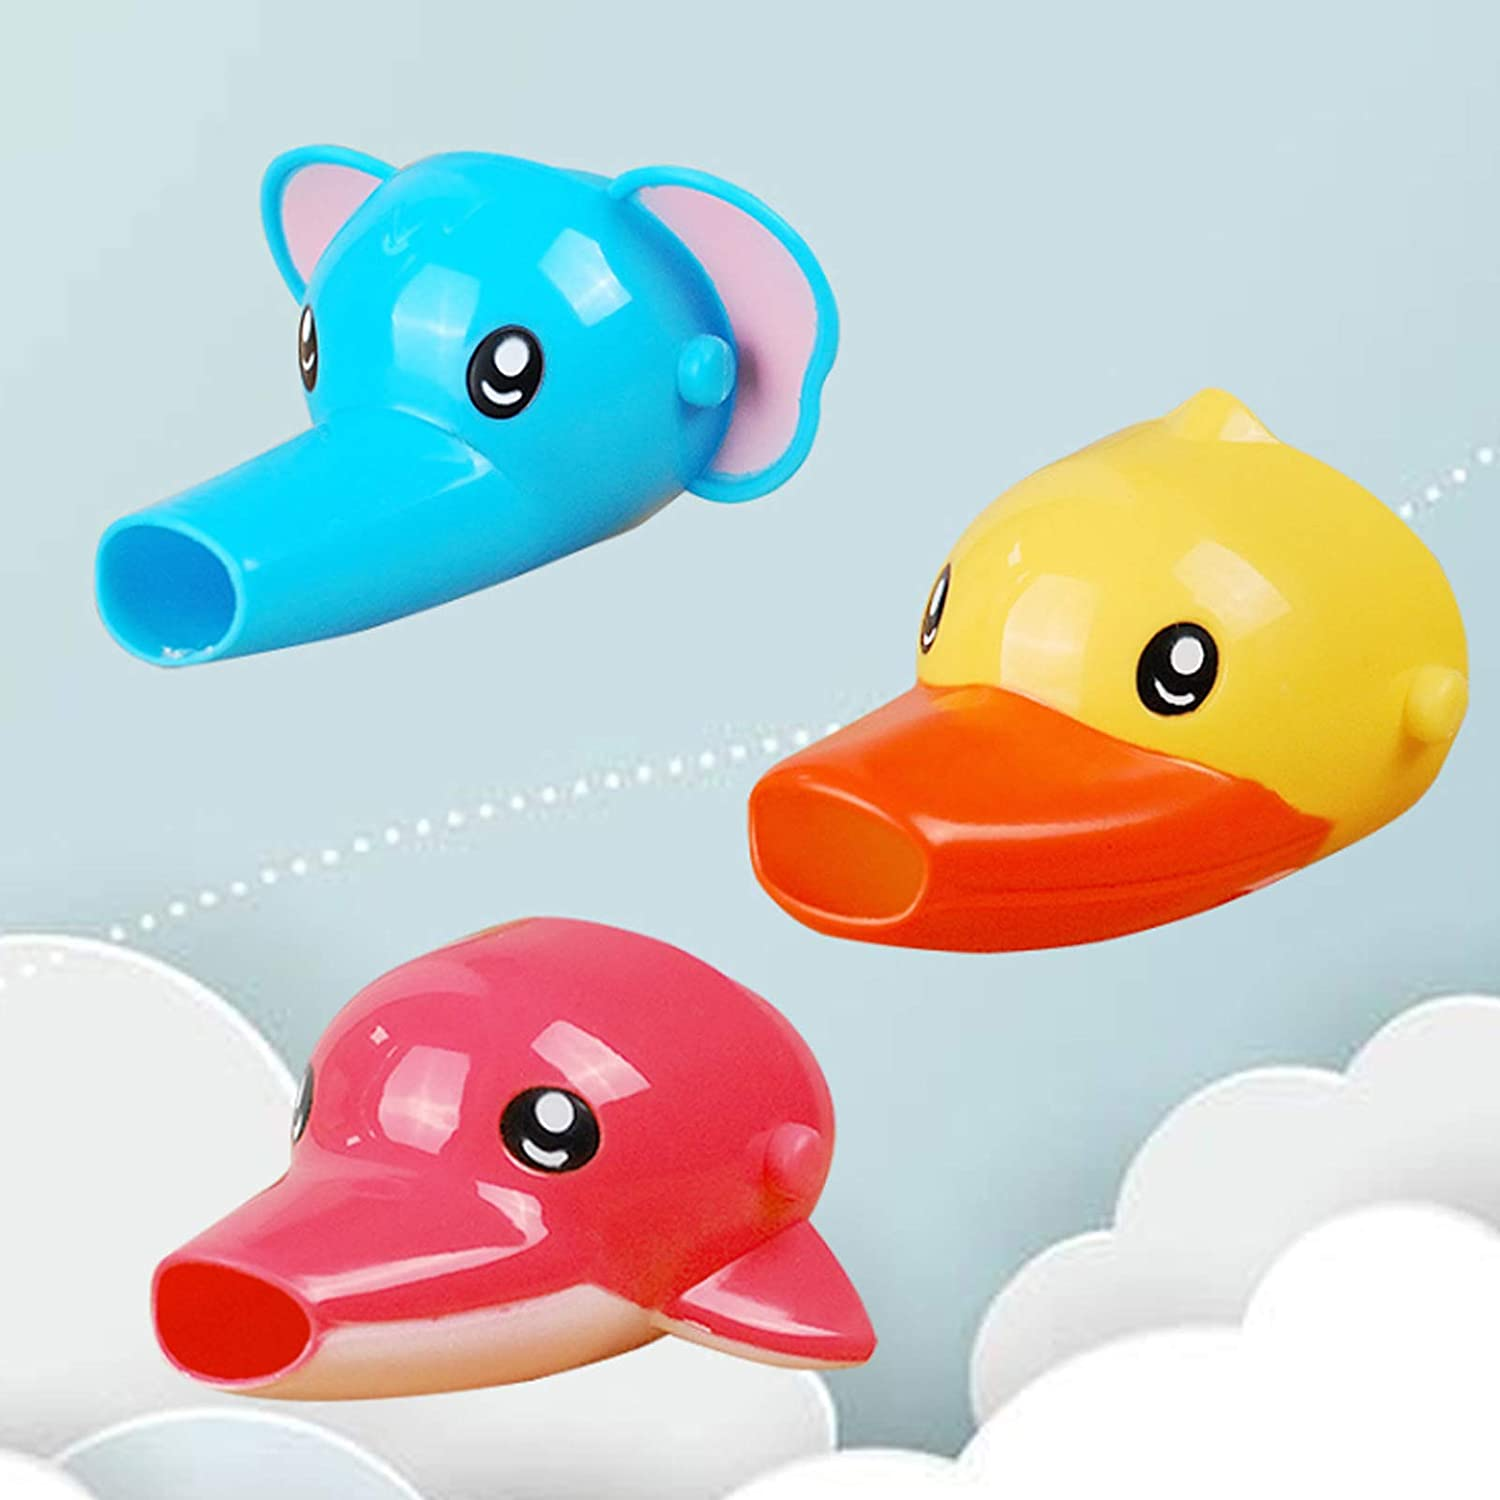 Faucet Extender for Kids - Set of 3 Animal Spout Extenders for Sink Faucets - Hand Washing for Babies, Toddlers & Children (Elephant + Duck+Dolphin) (Pink Dolphin+Blue Elephant+Yellow Duck)